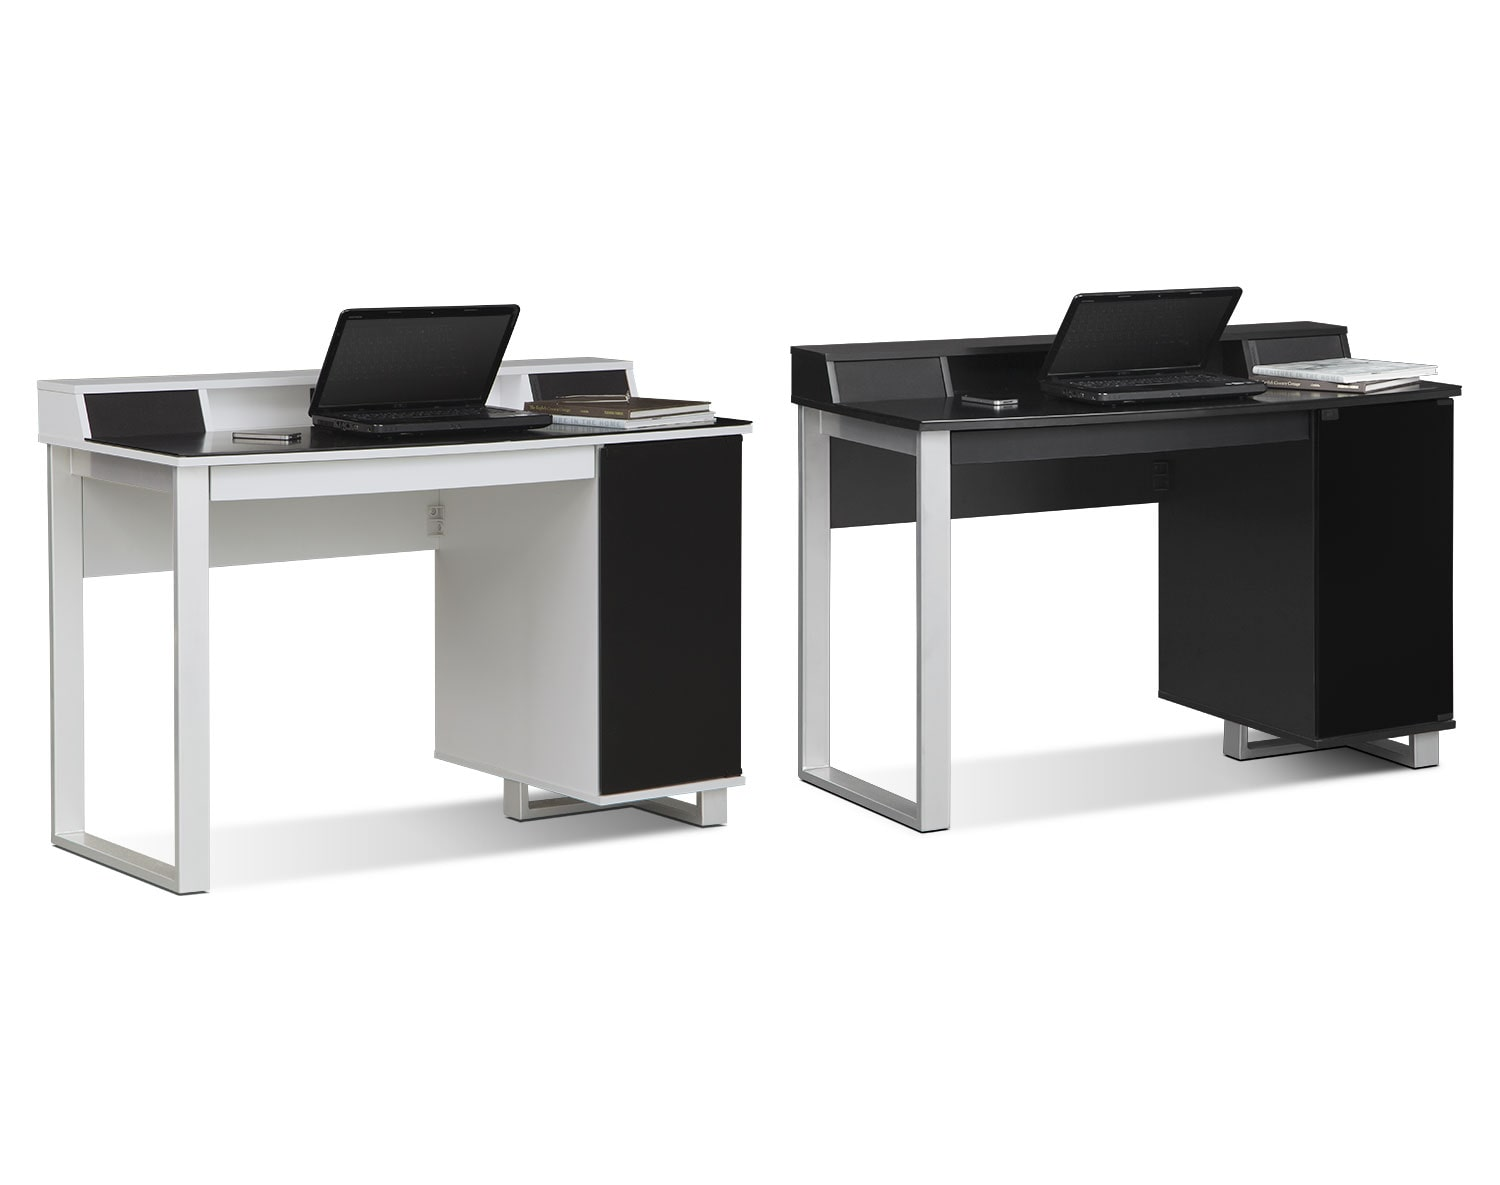 The Pacer Desk Collection